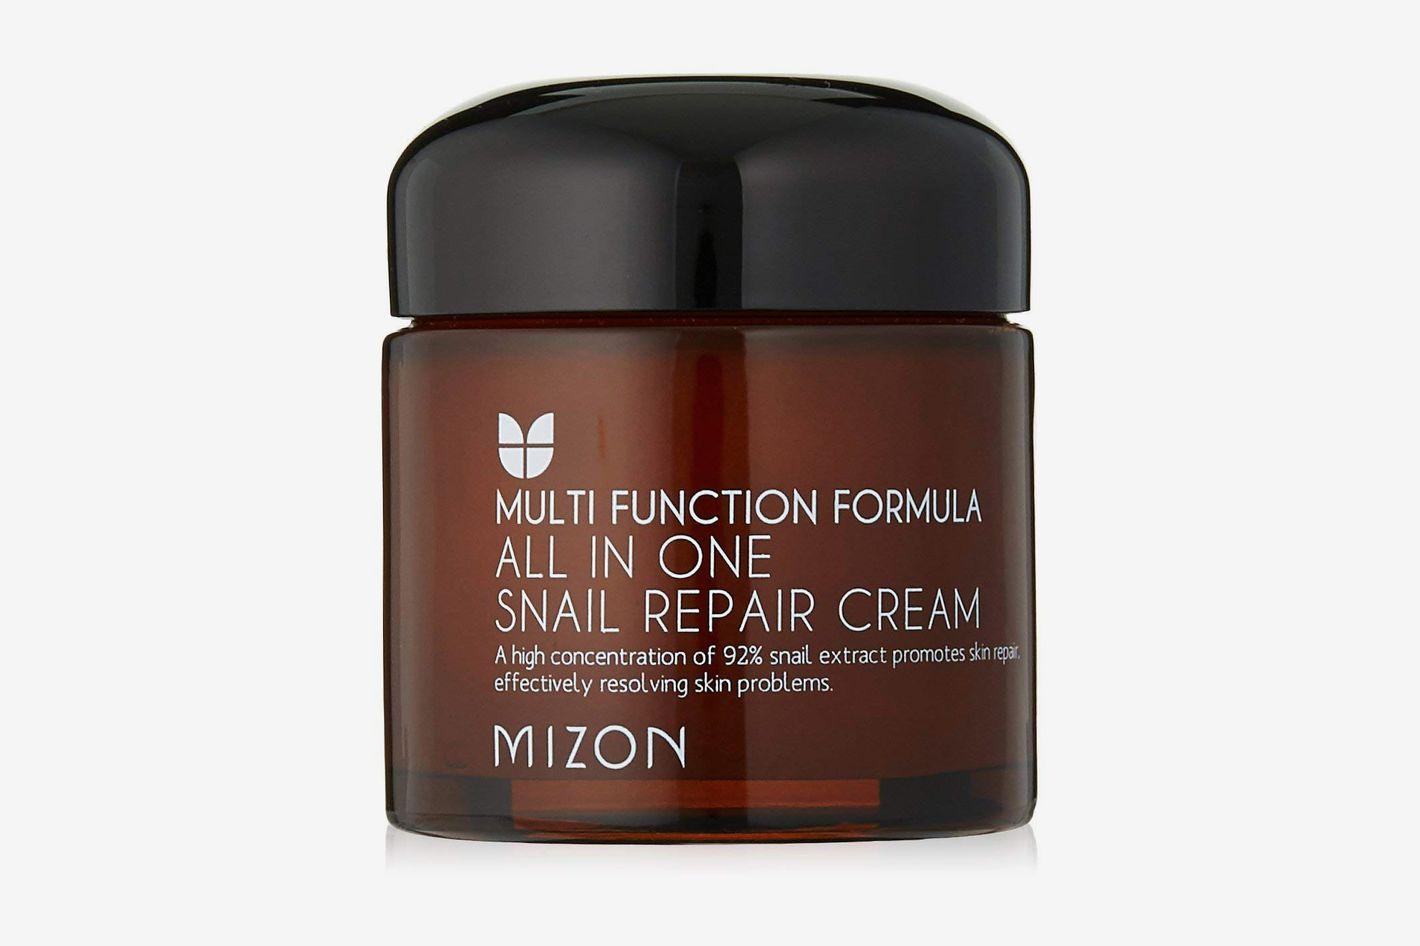 Mizon All-in-One Repair Snail Cream